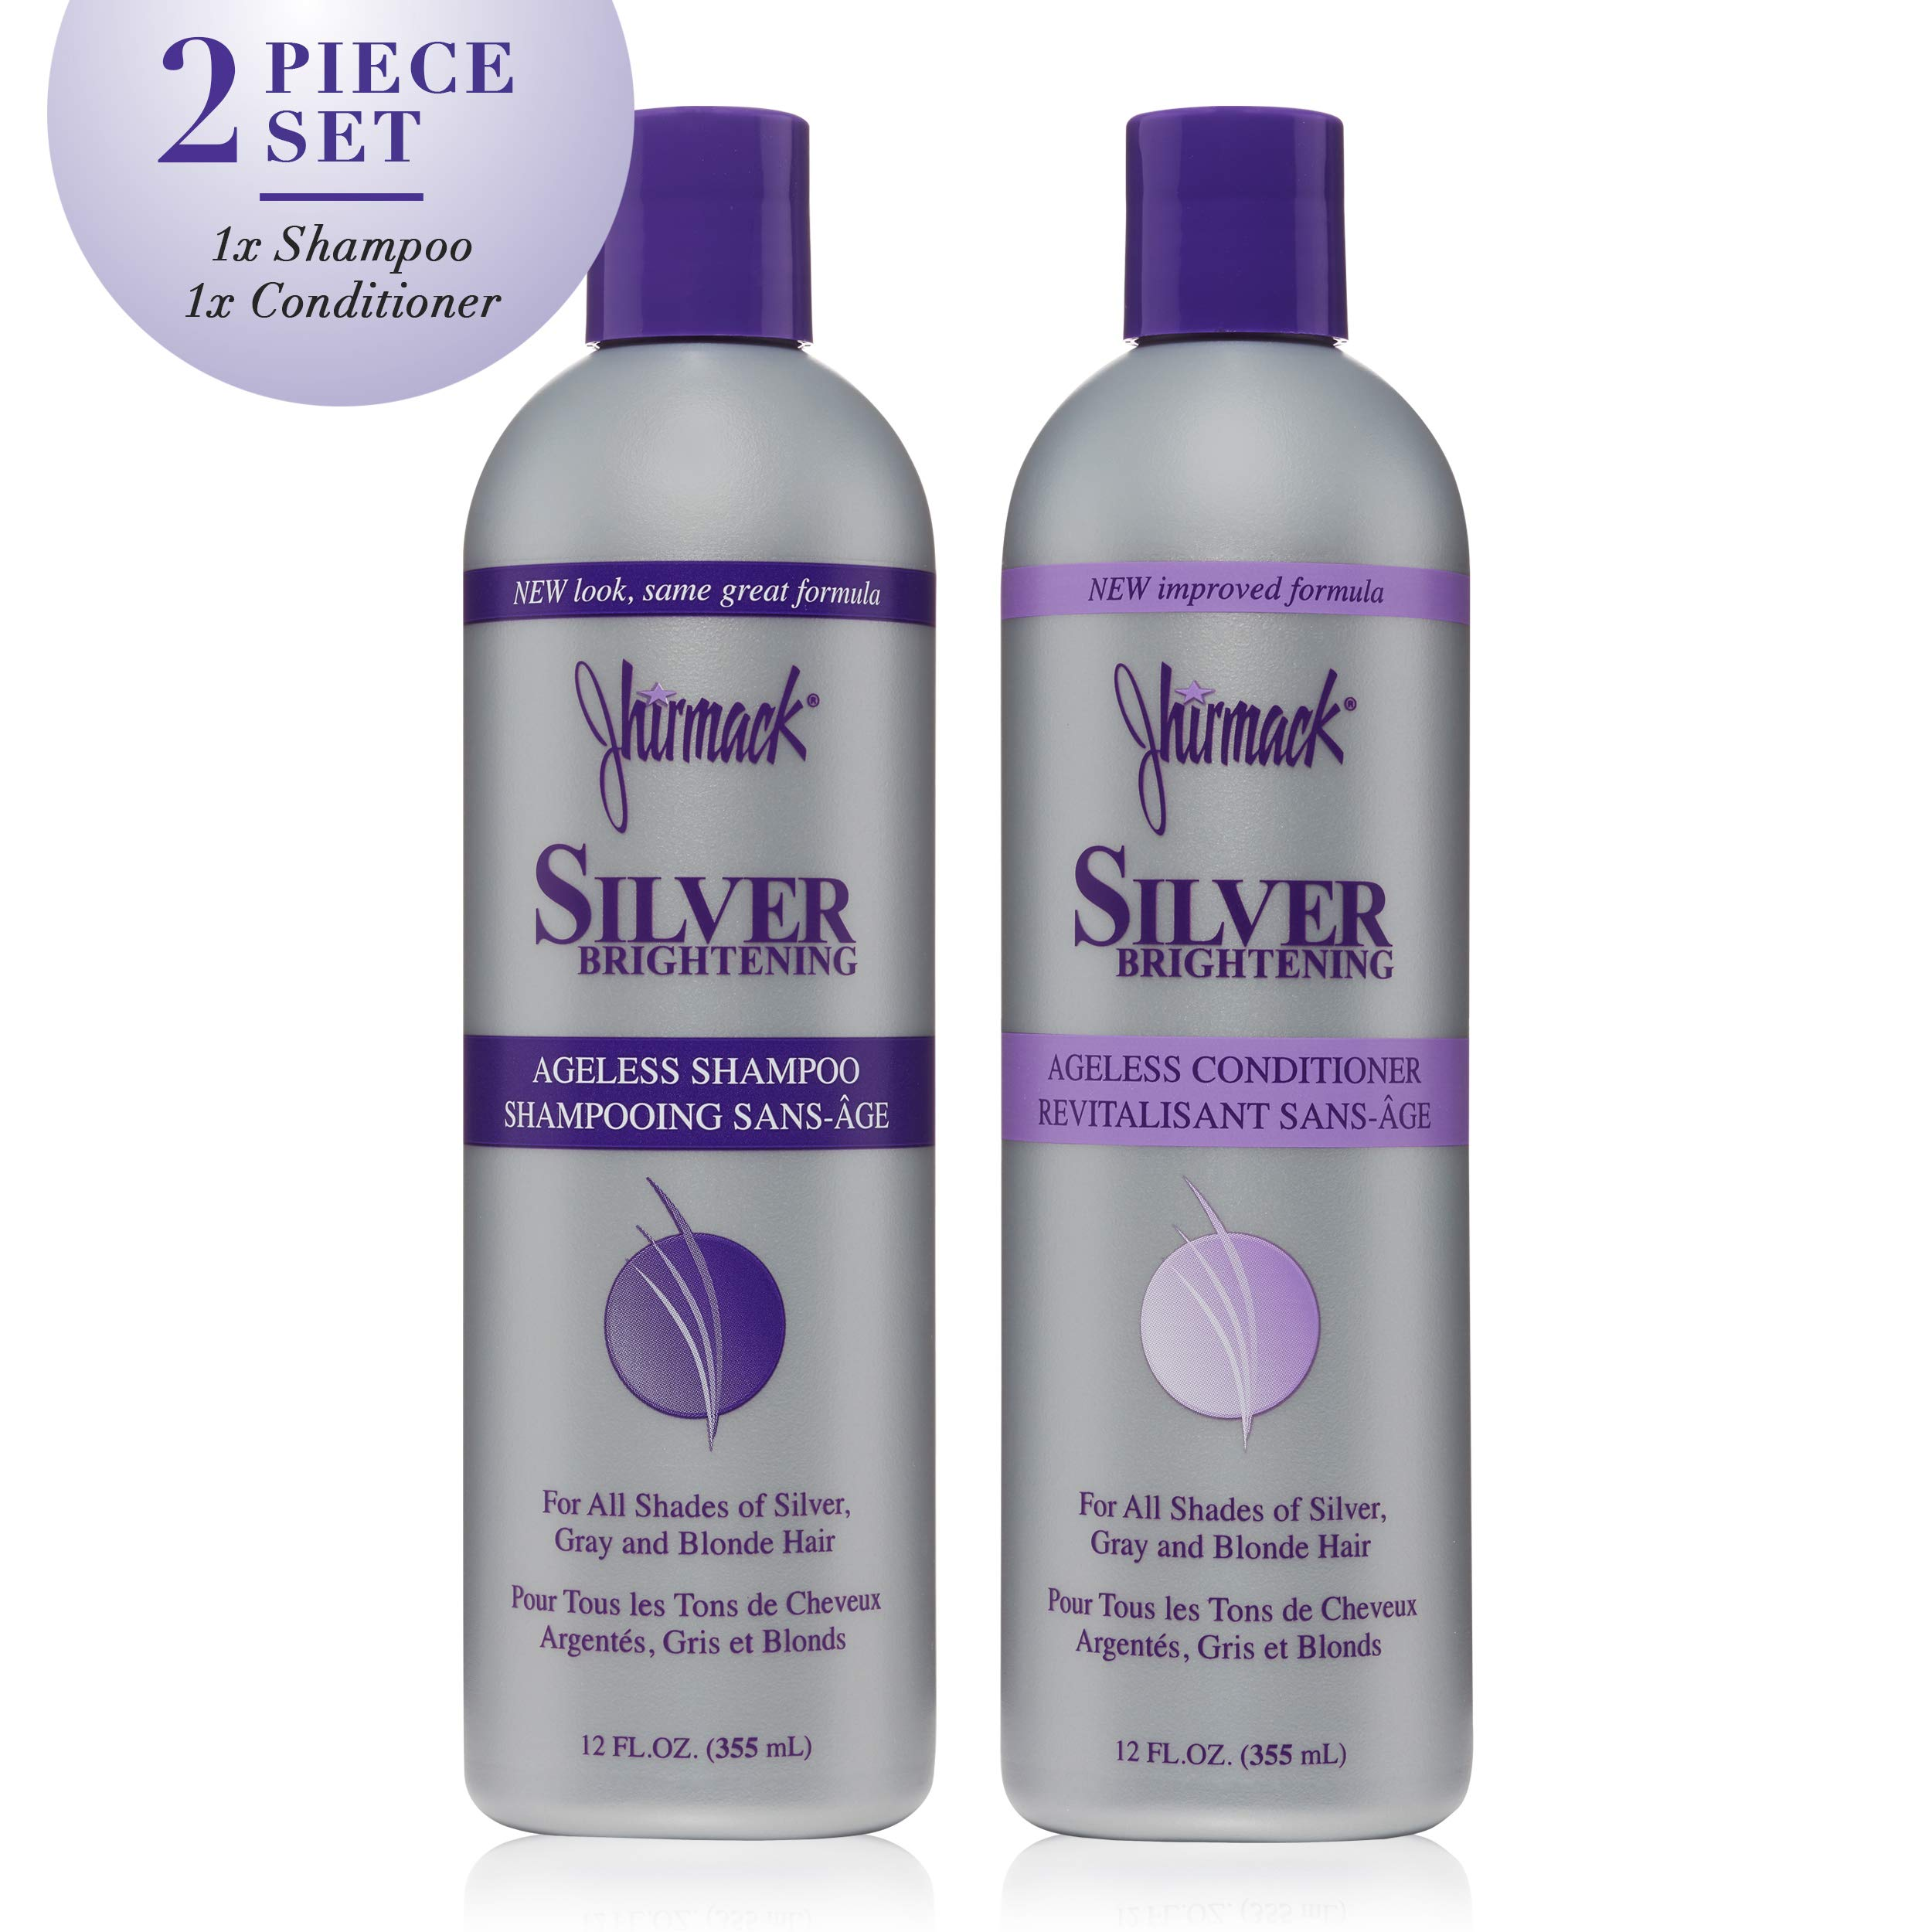 Jhirmack Silver Brightening Ageless Purple Shampoo Set of 2 developed for all shades of silver, gray, and blonde hair and enhance highlights - 1 Shampoo + 1 Conditioner by Jhirmack